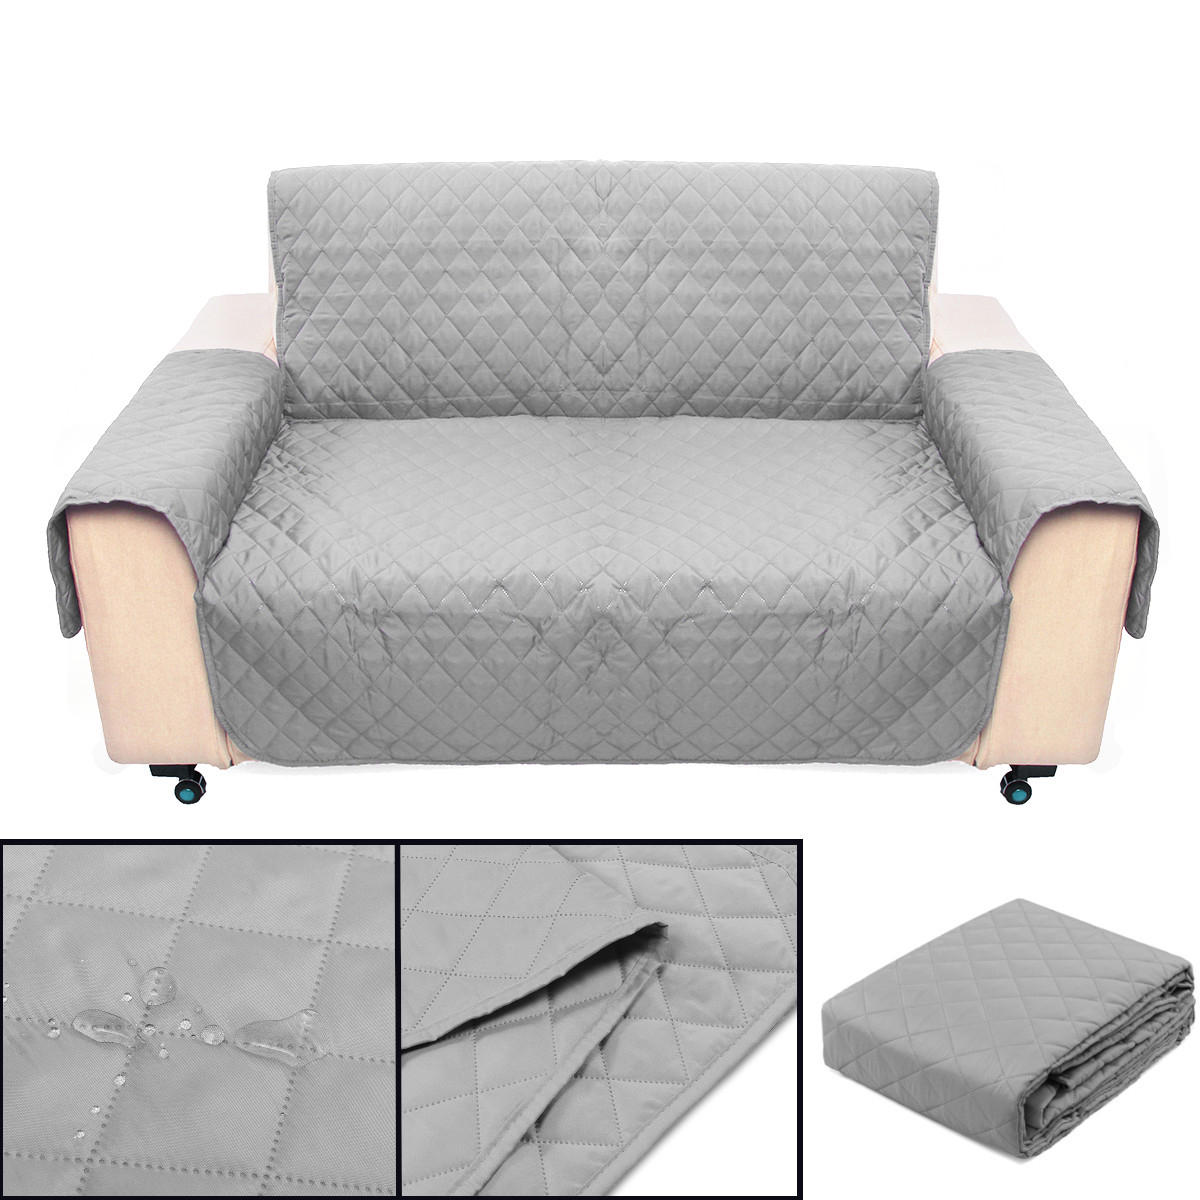 Light Gray 2 Seater Pet Sofa Couch Protector Cover Removable W/Strap Waterproof Sofa Seat Covers